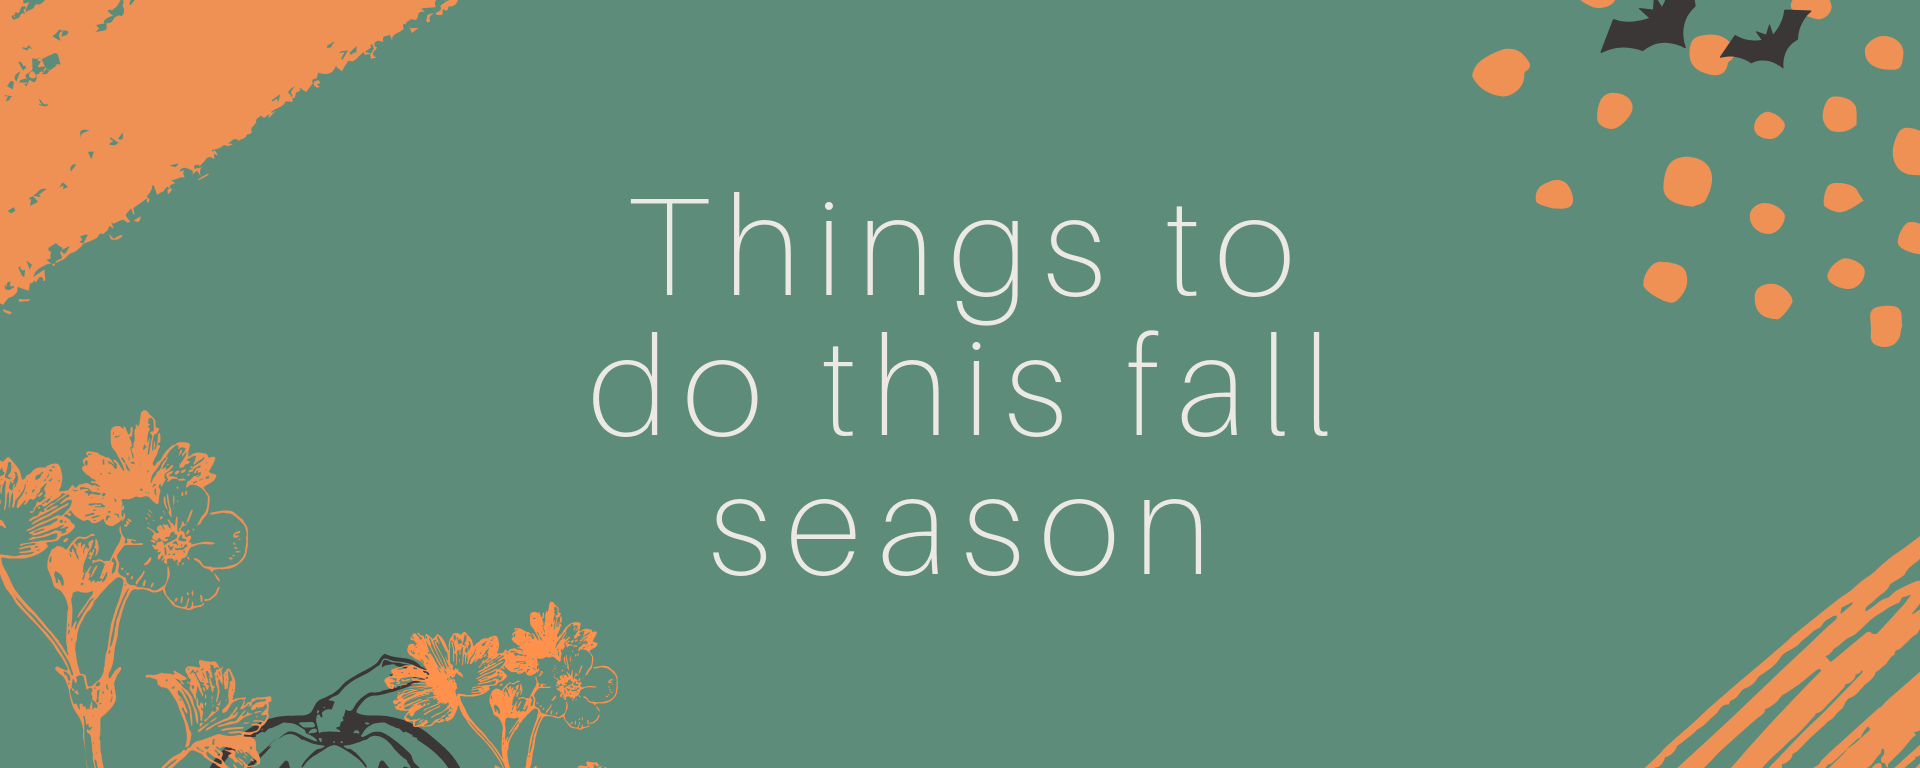 "Green background with text that says, ""Things to do this fall season."""